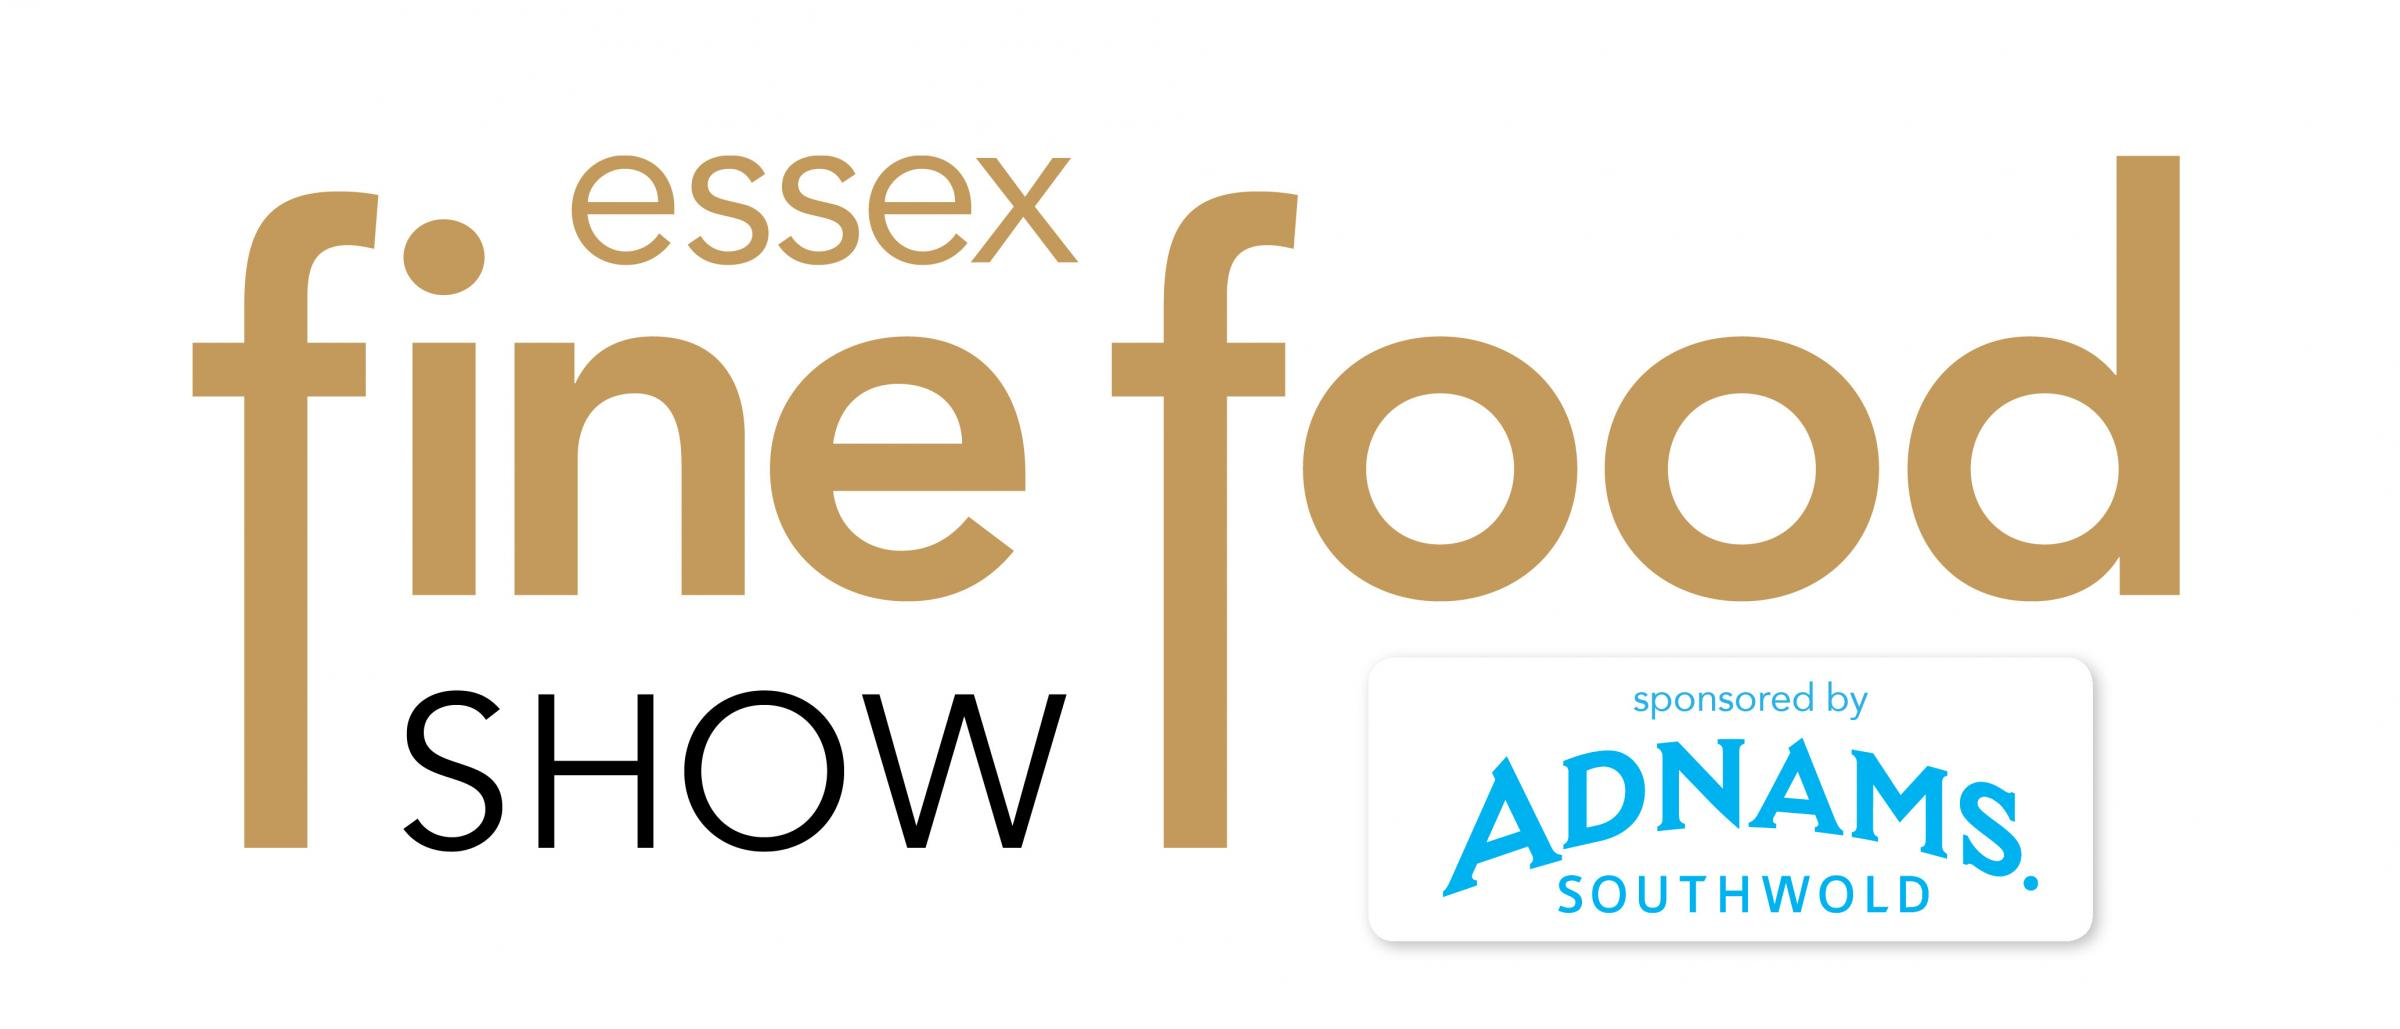 Why you shouldn't miss Essex Fine Food show